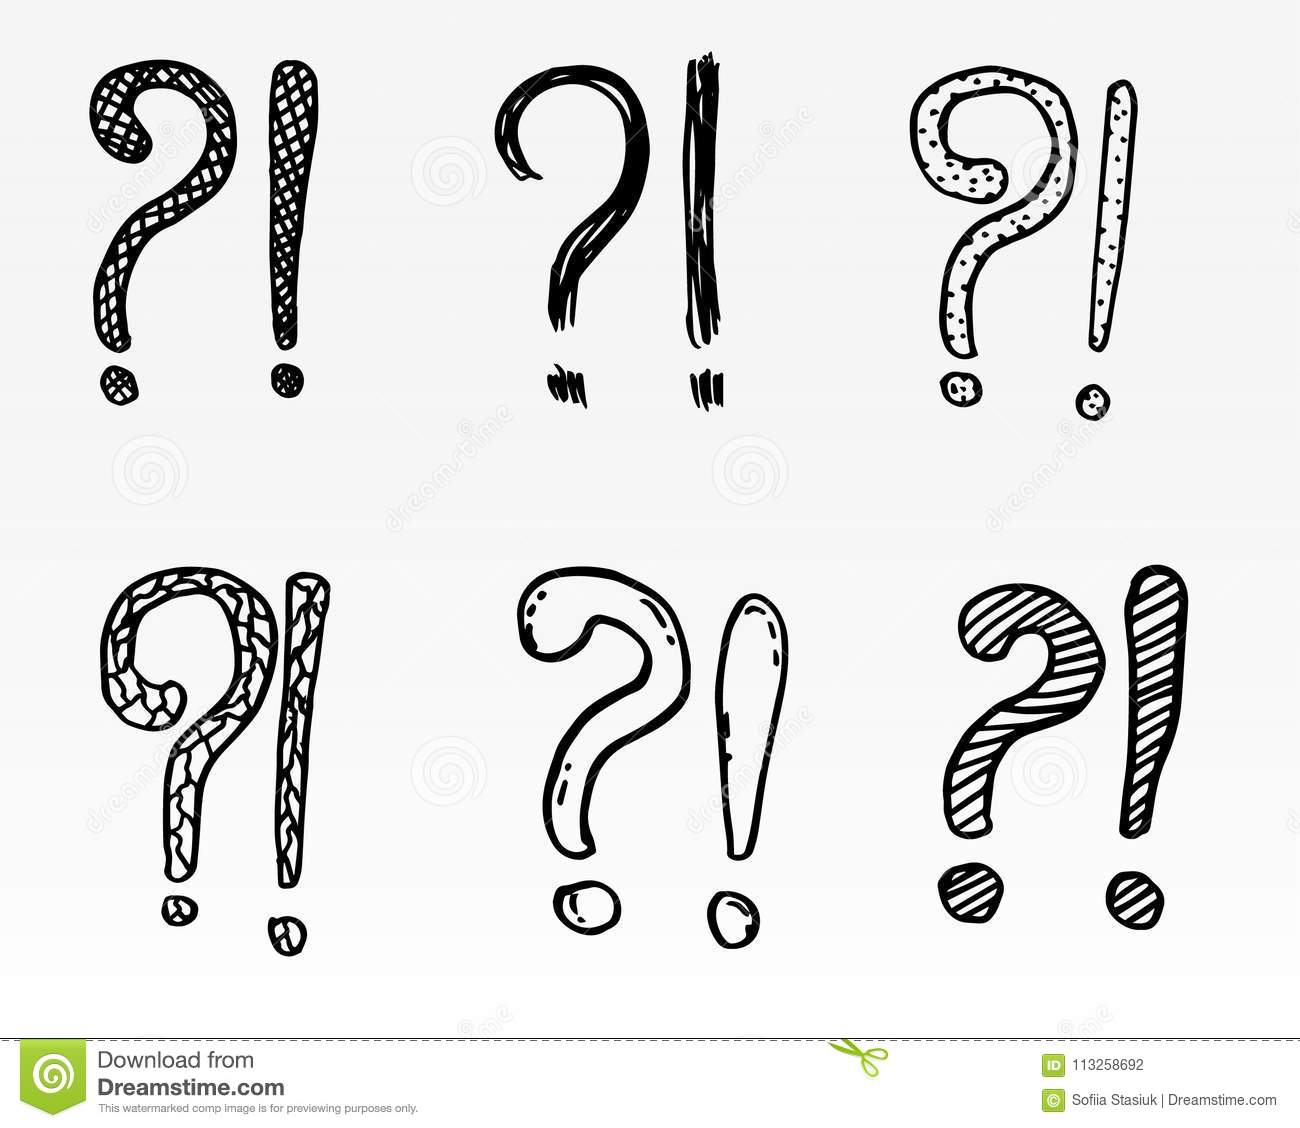 exclamation marks and question marks hand drawn set cartoon style